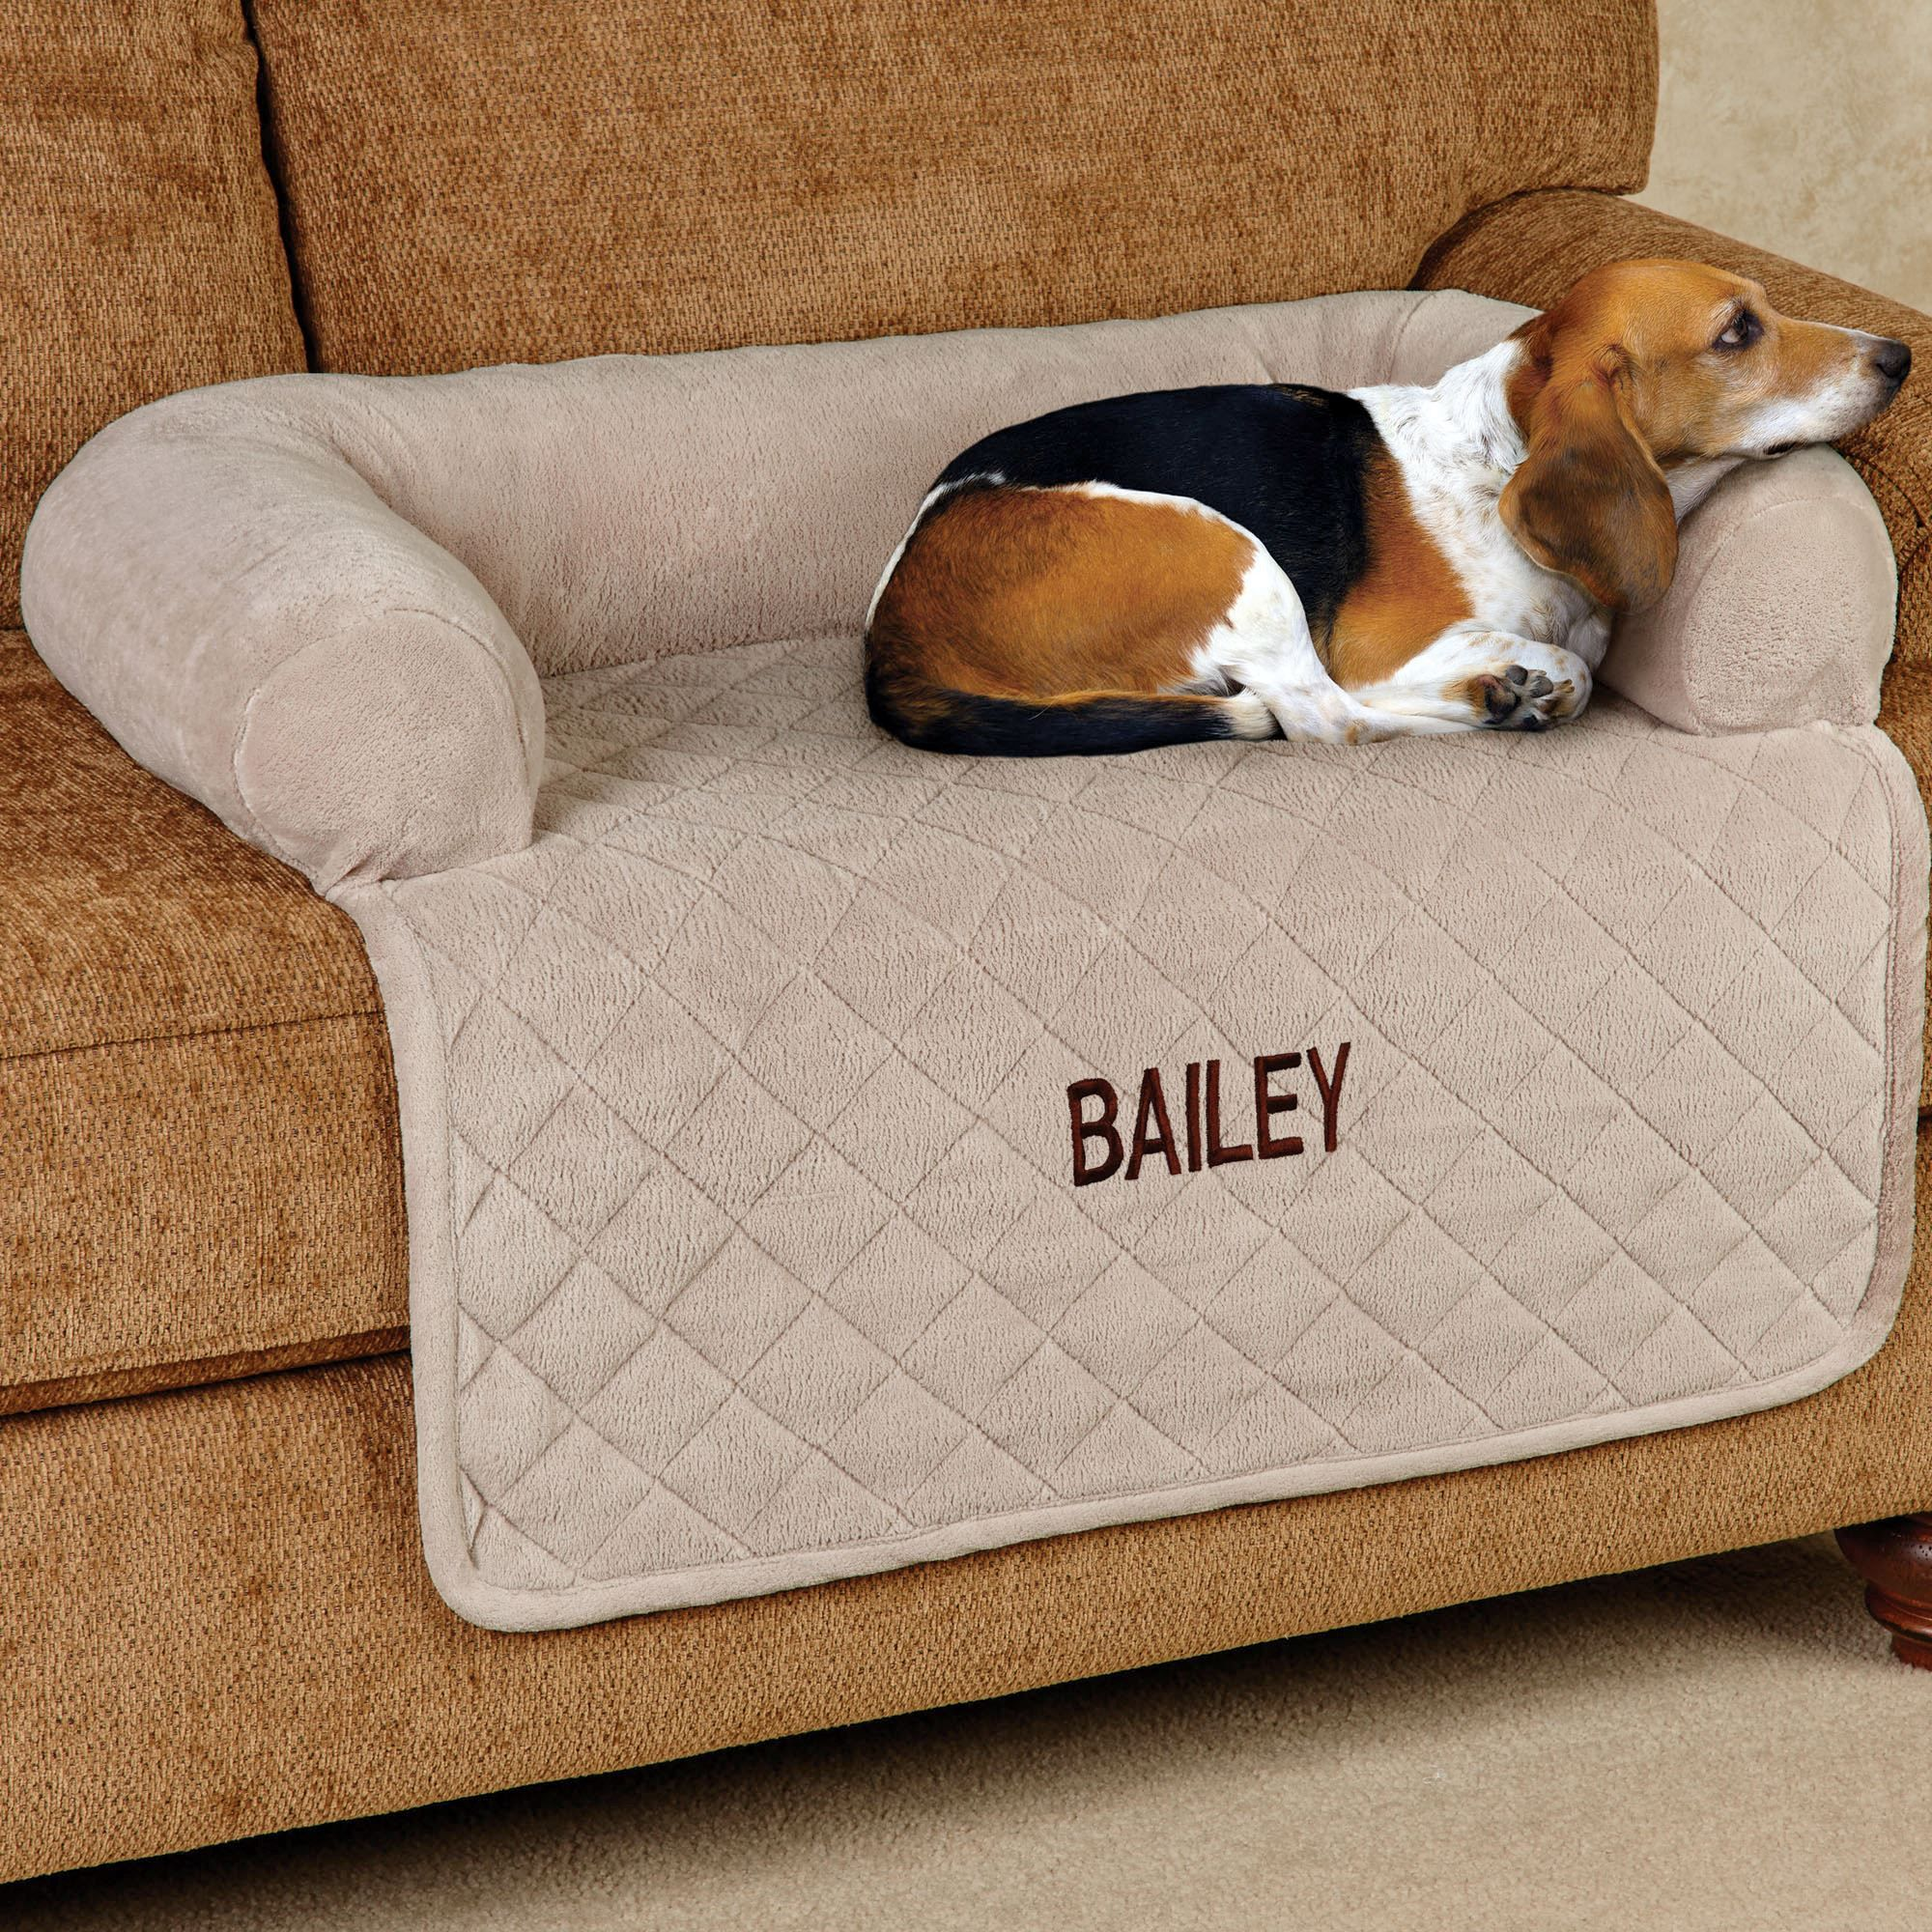 sofa cover blankets modern leather sectional furniture ultimate microplush quilted pet with bolster animals to this actually seems much more practical than all the we currently employ bolstered 30 x